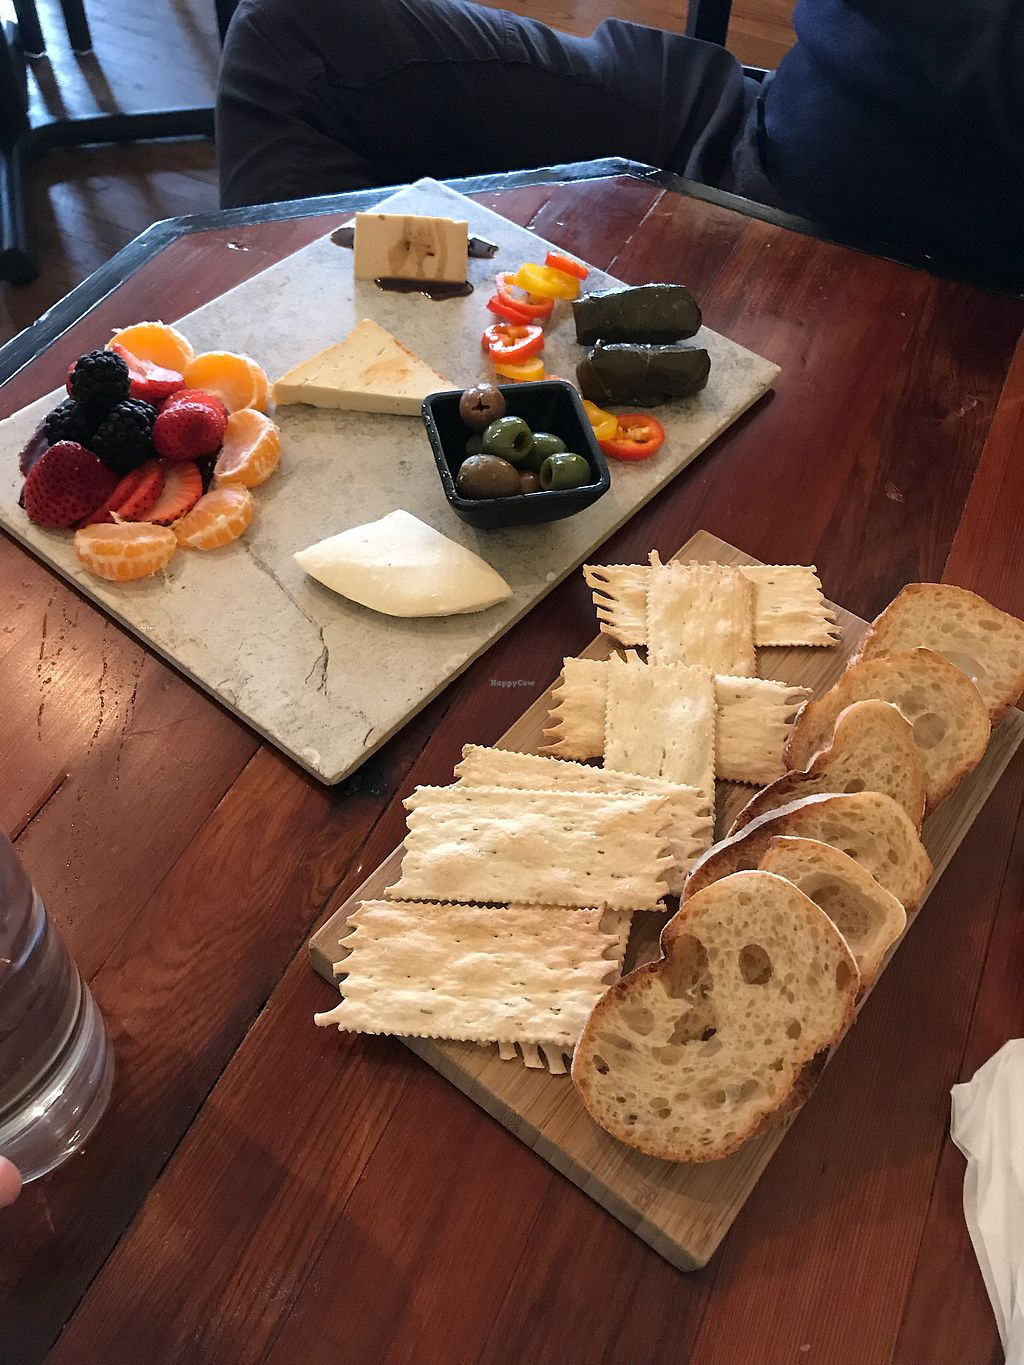 """Photo of Vtopia Cheese Shop and Deli  by <a href=""""/members/profile/NSmoke"""">NSmoke</a> <br/>Cheese platter! <br/> February 6, 2018  - <a href='/contact/abuse/image/59803/355529'>Report</a>"""